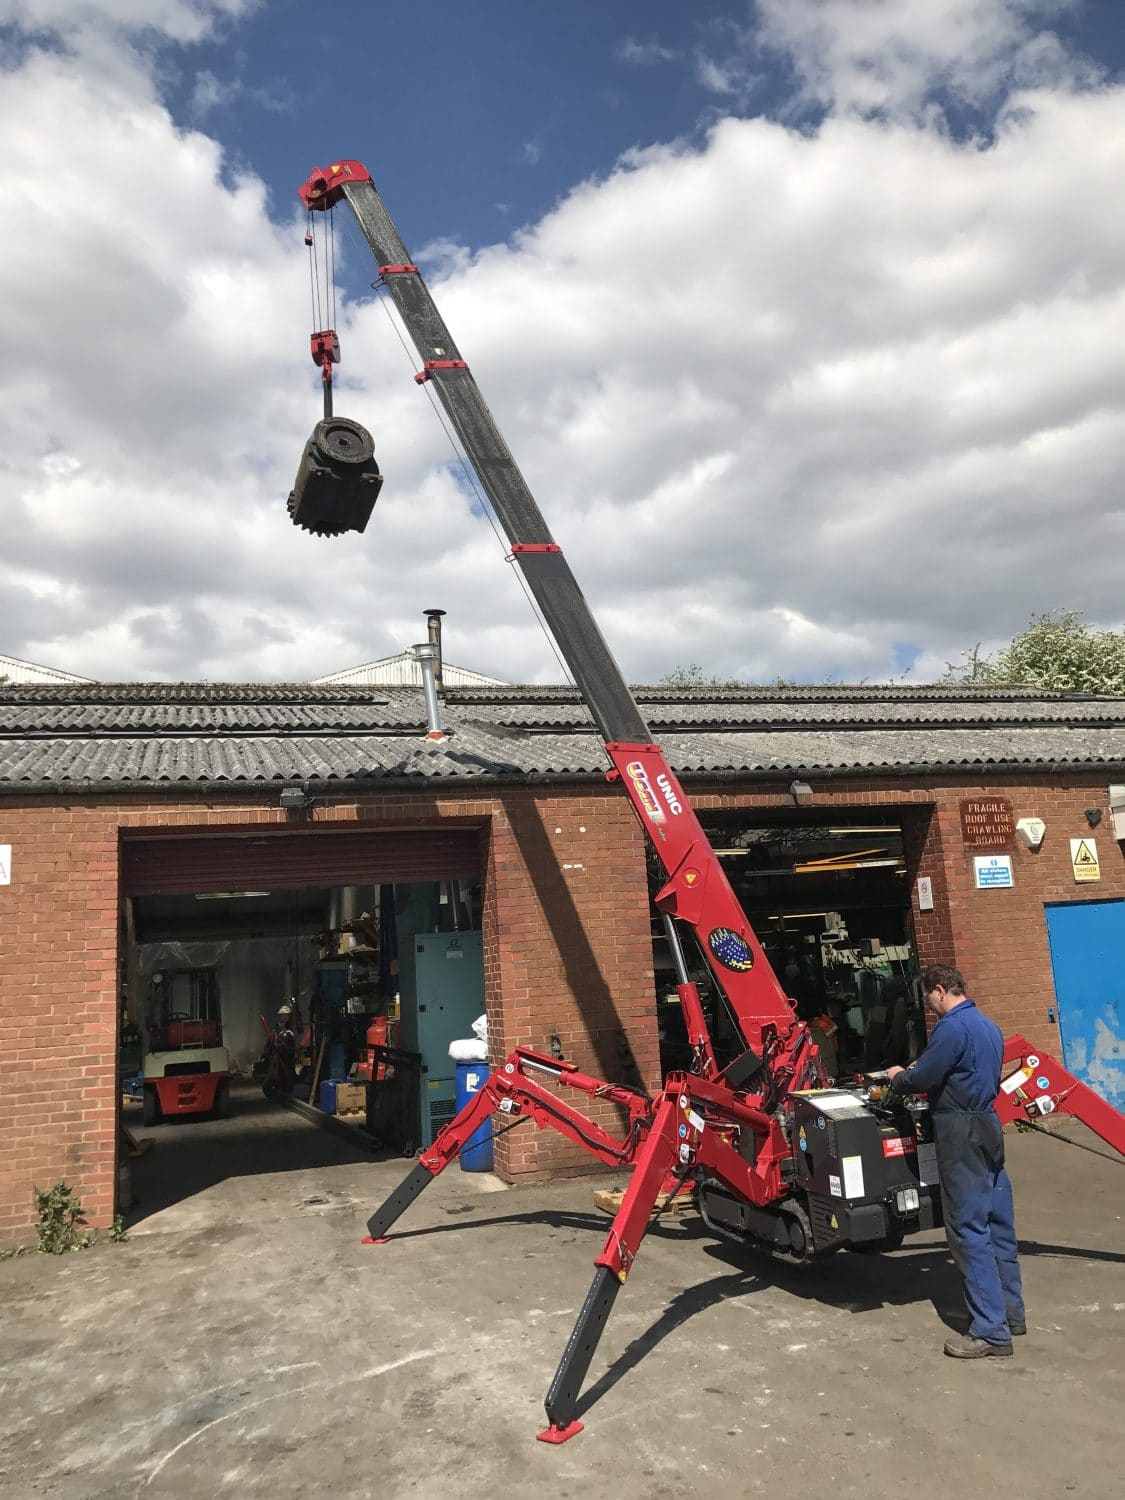 red spider crane hire in action, engineer on the control panel